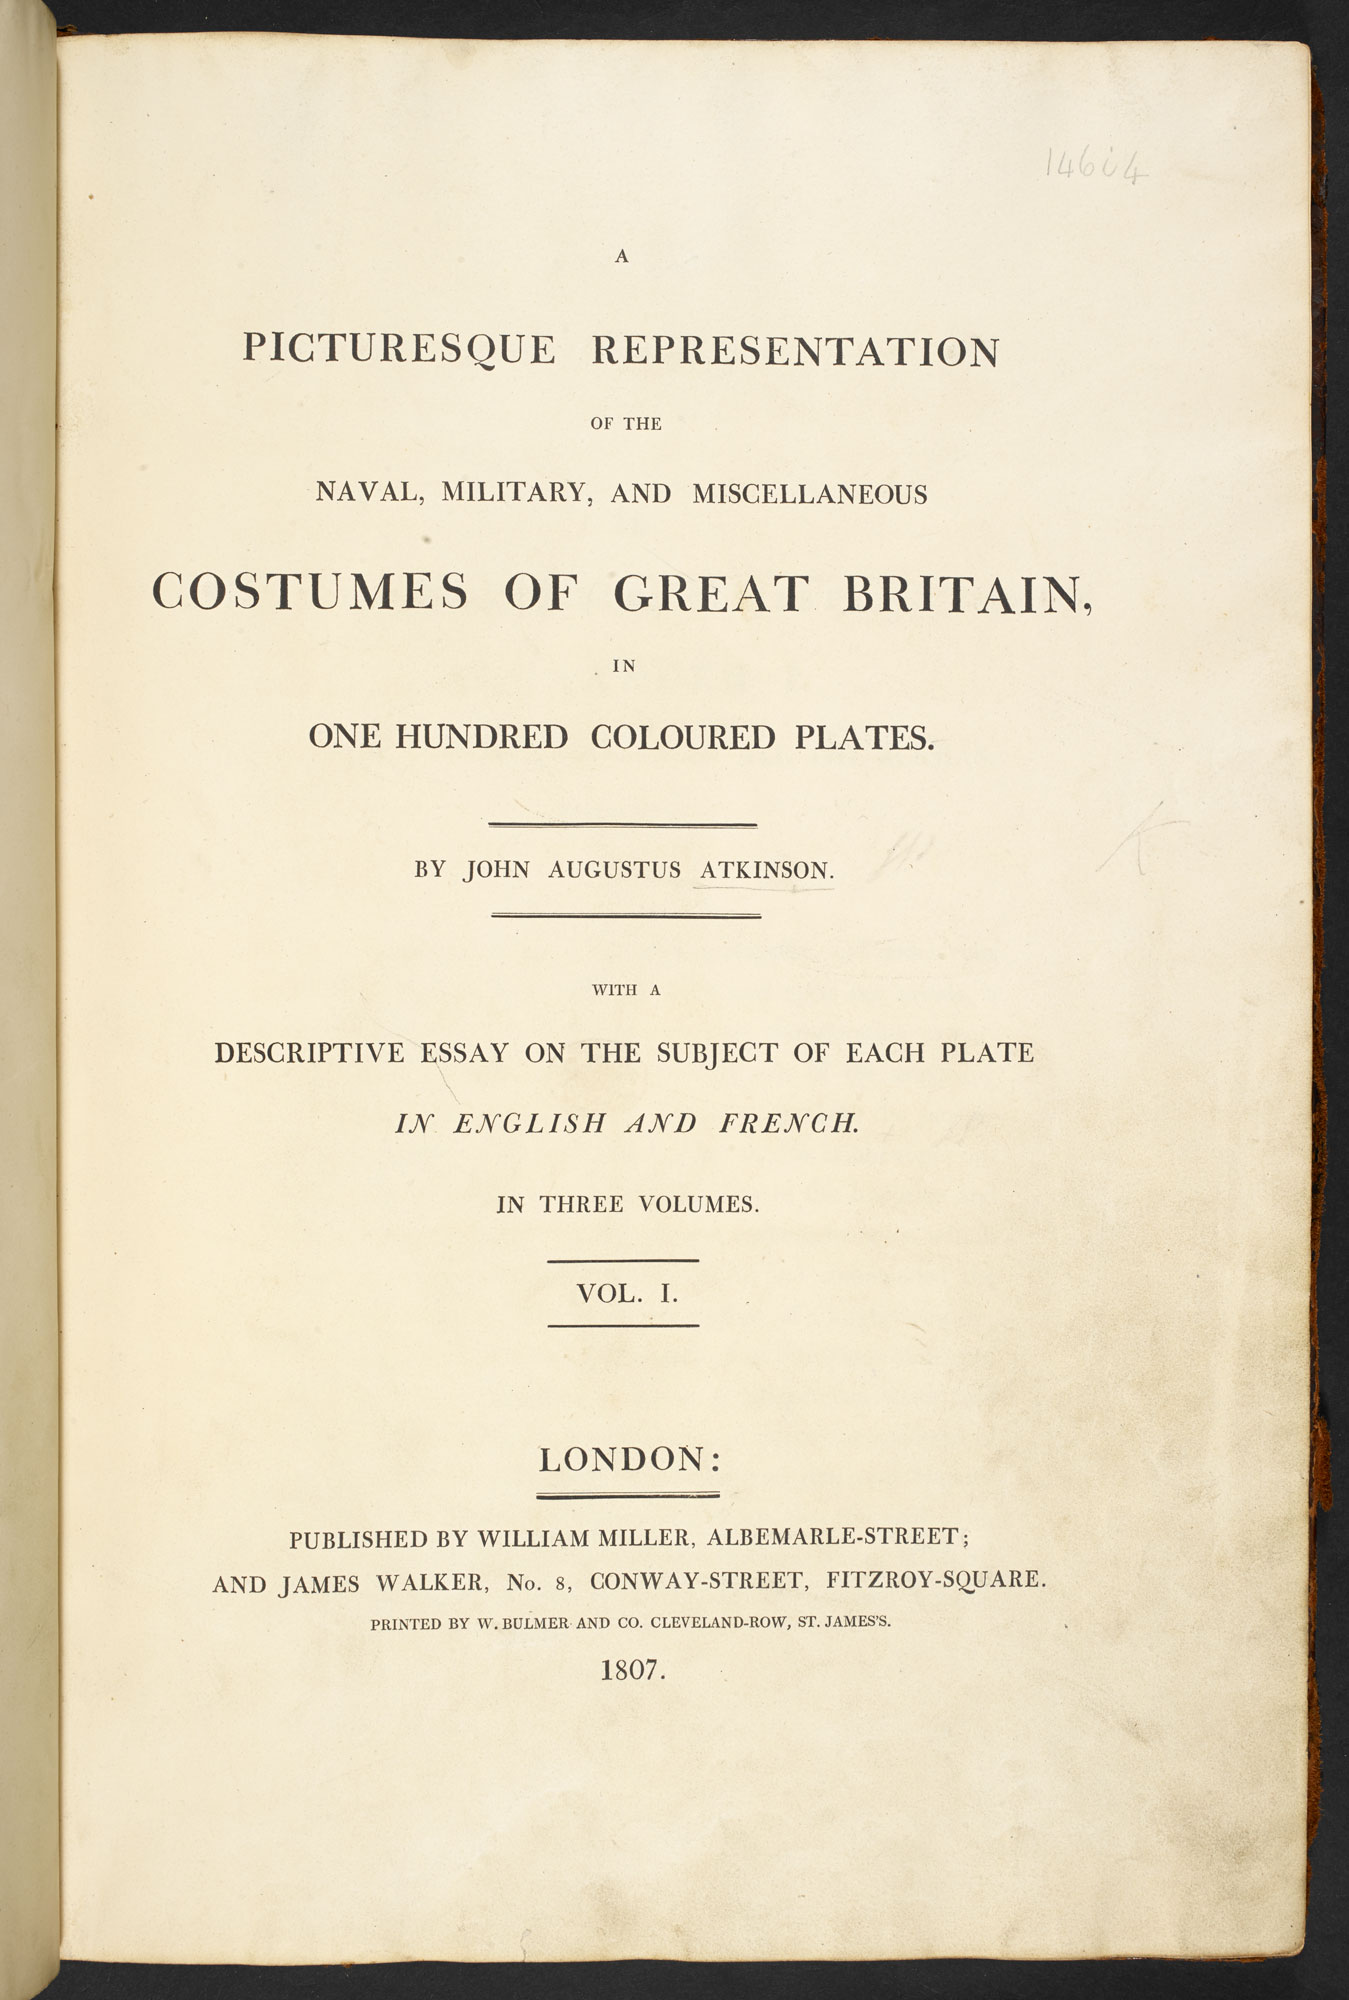 Costumes of the Navy, Army and other occupations [page: title page]